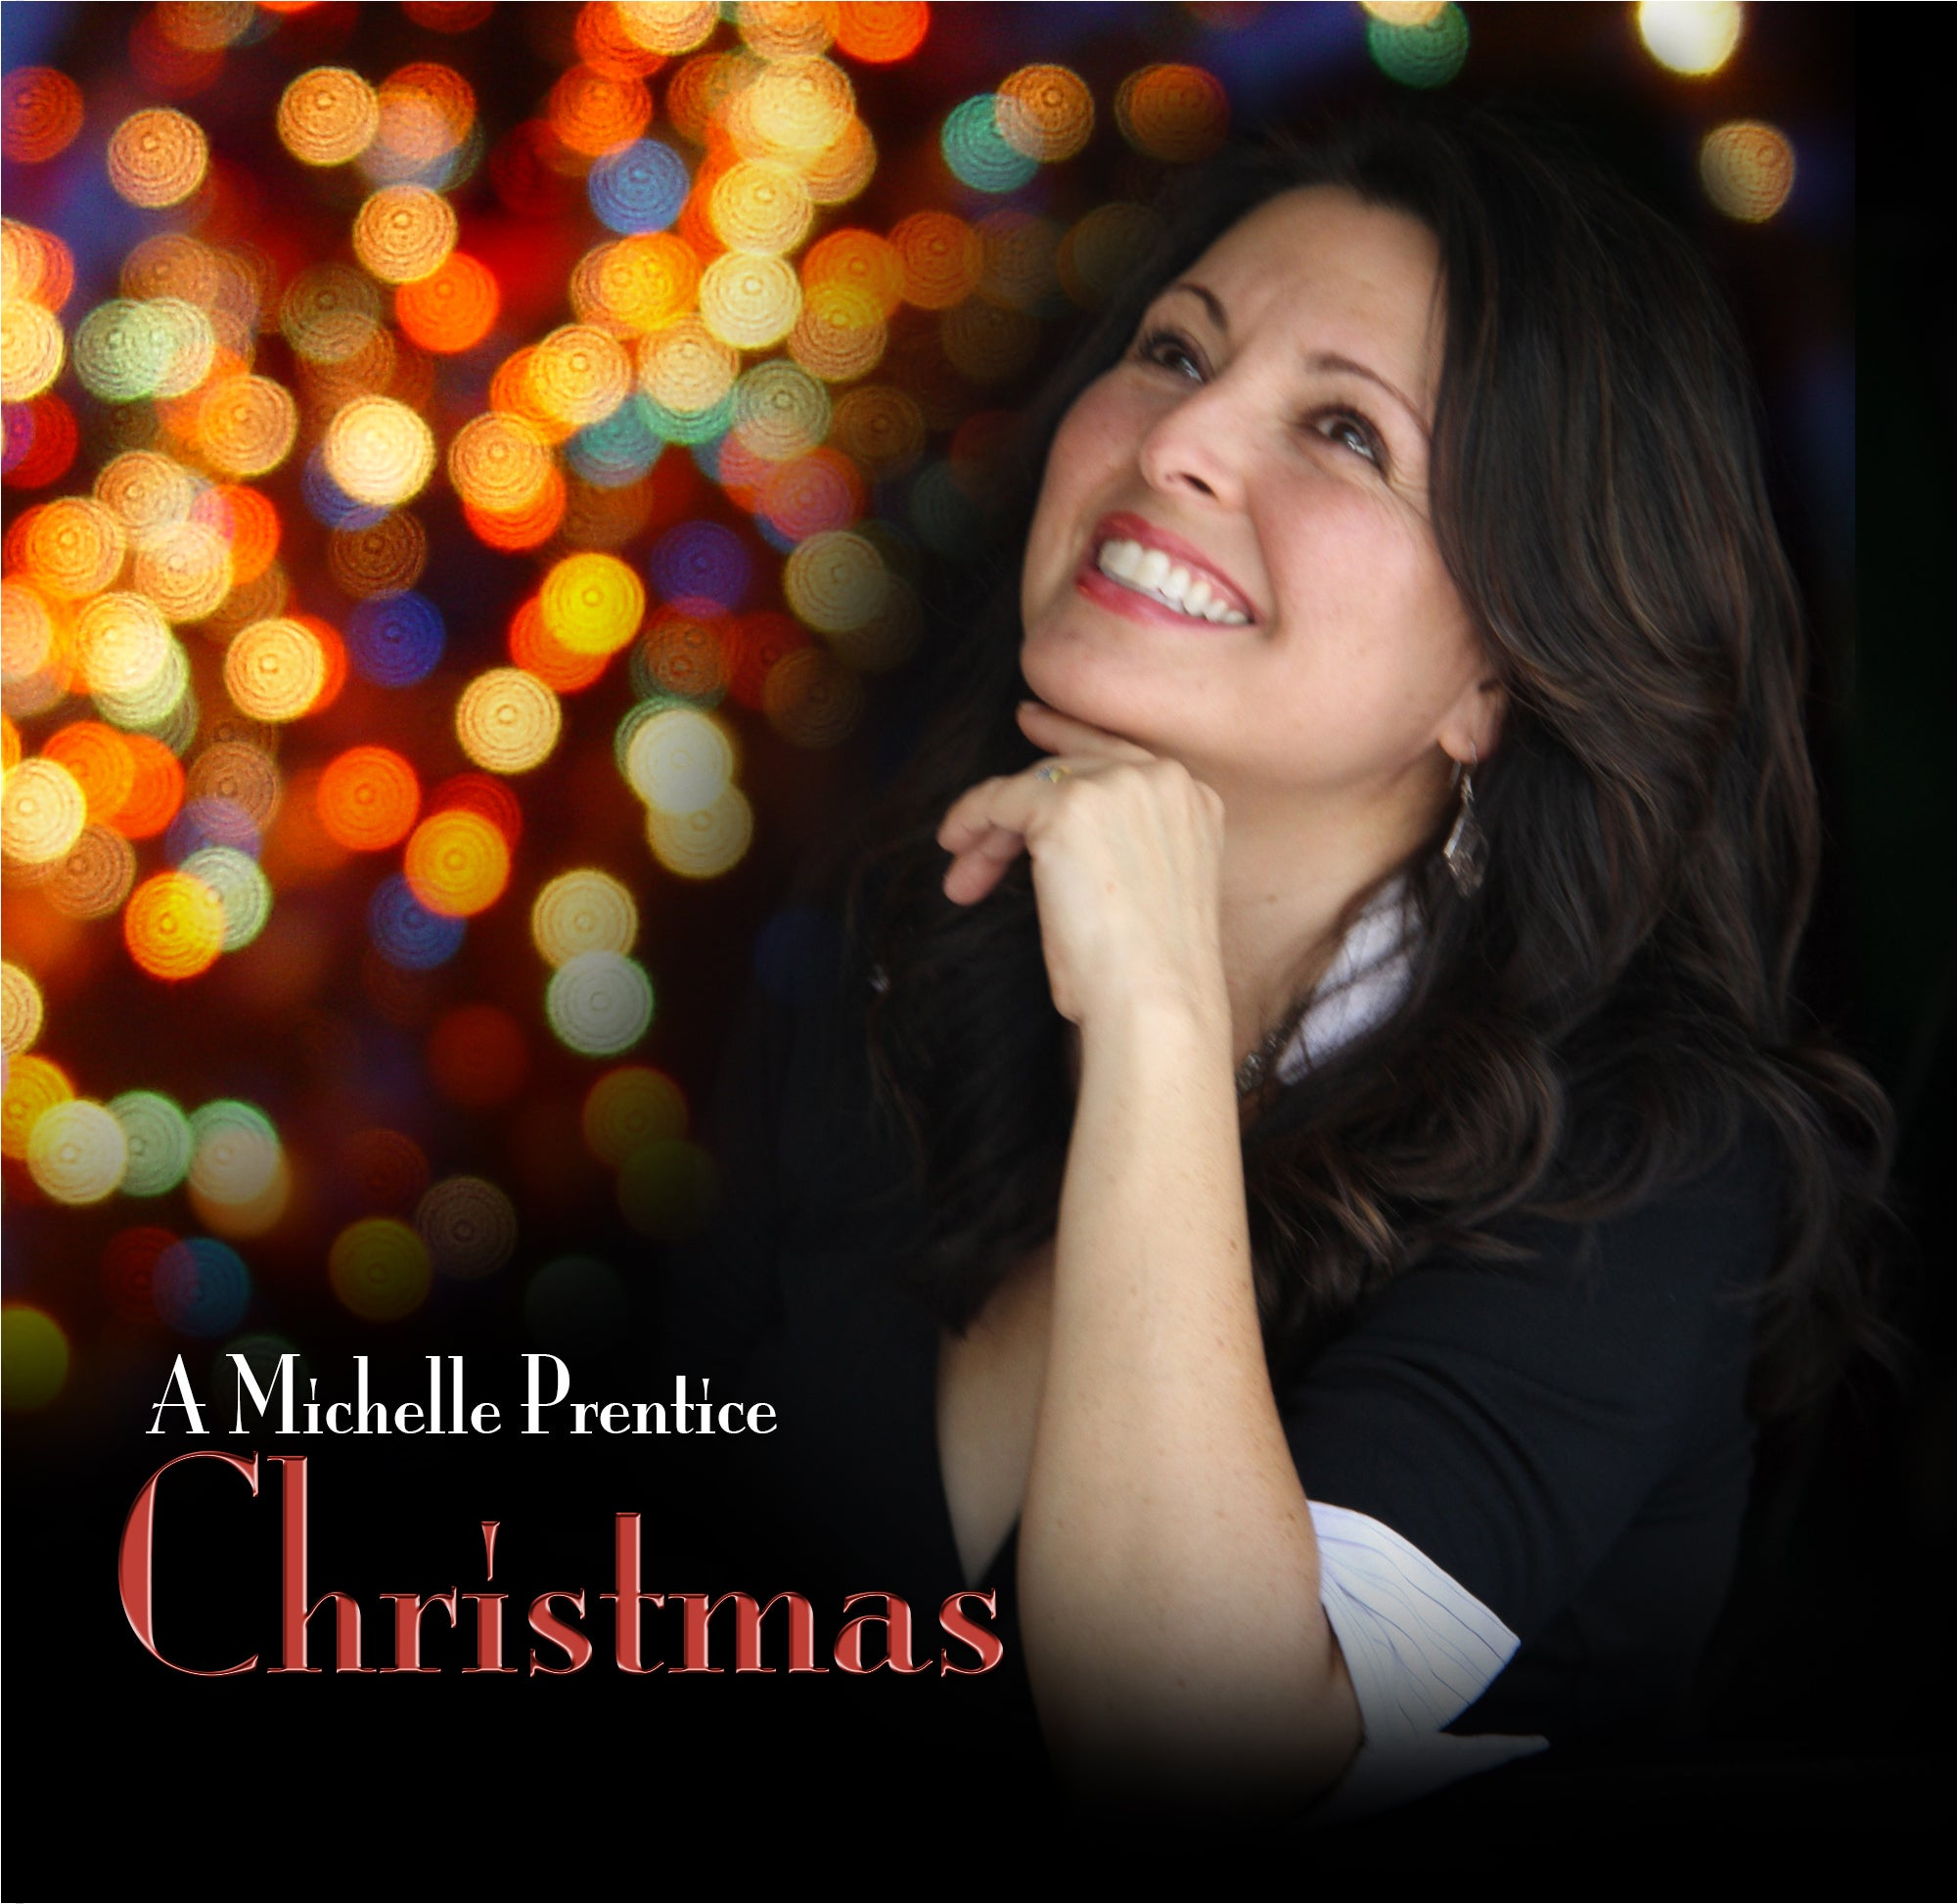 """""""Most Wonderful Time of the Year"""" by Michelle Prentice (Album: A Michelle Prentice Christmas)"""